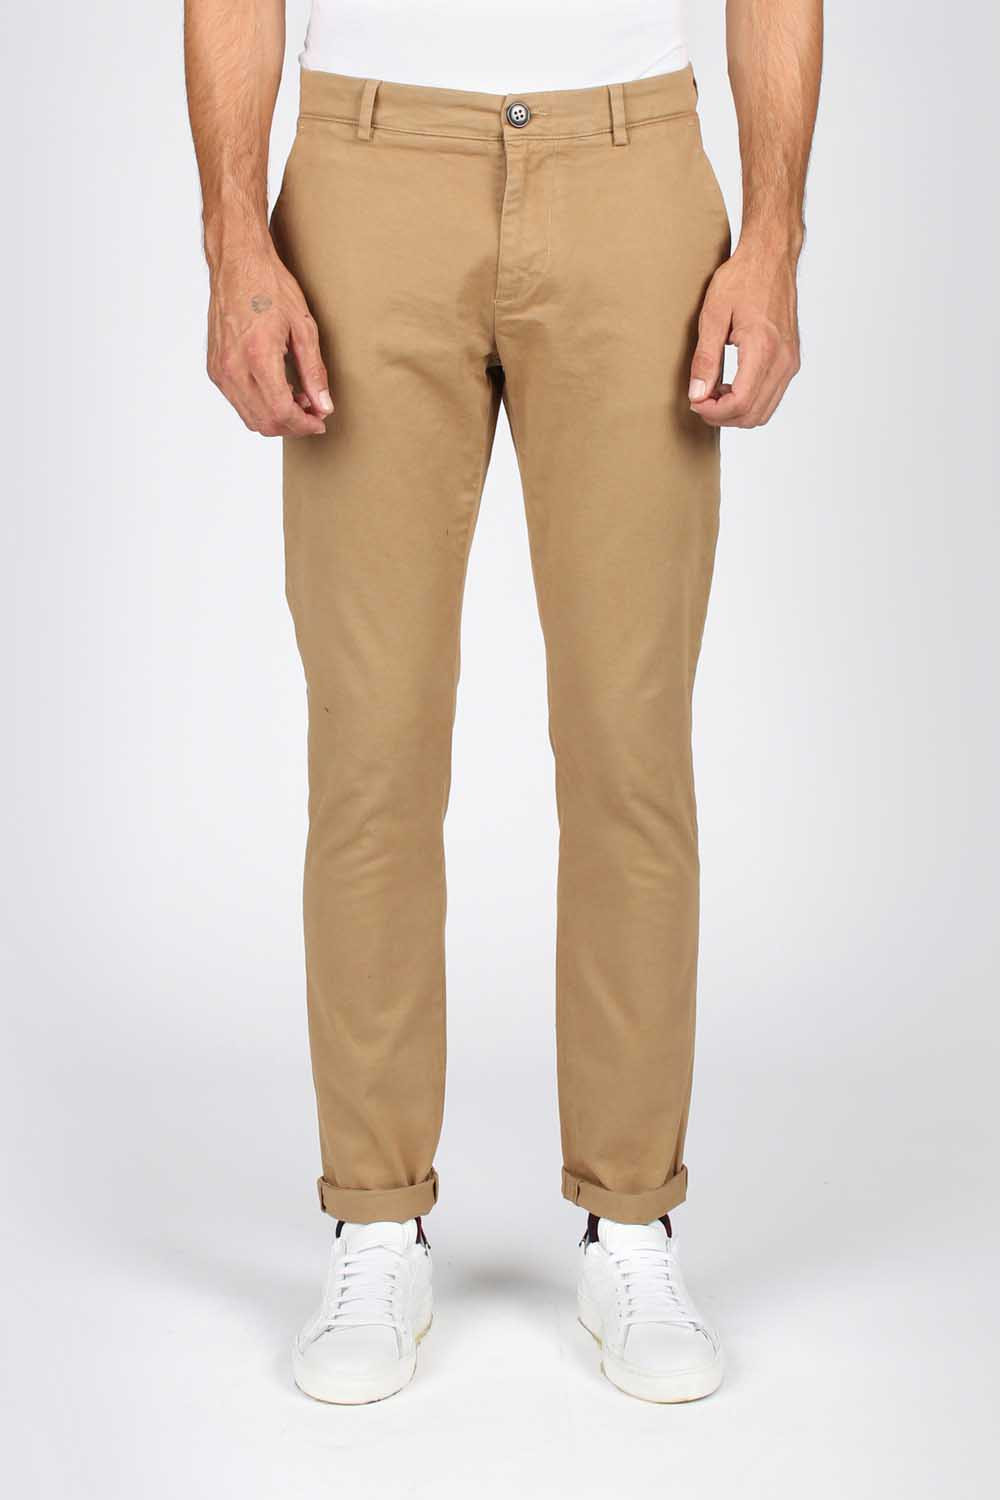 comprare on line 7b973 716a9 Pantaloni chino beige